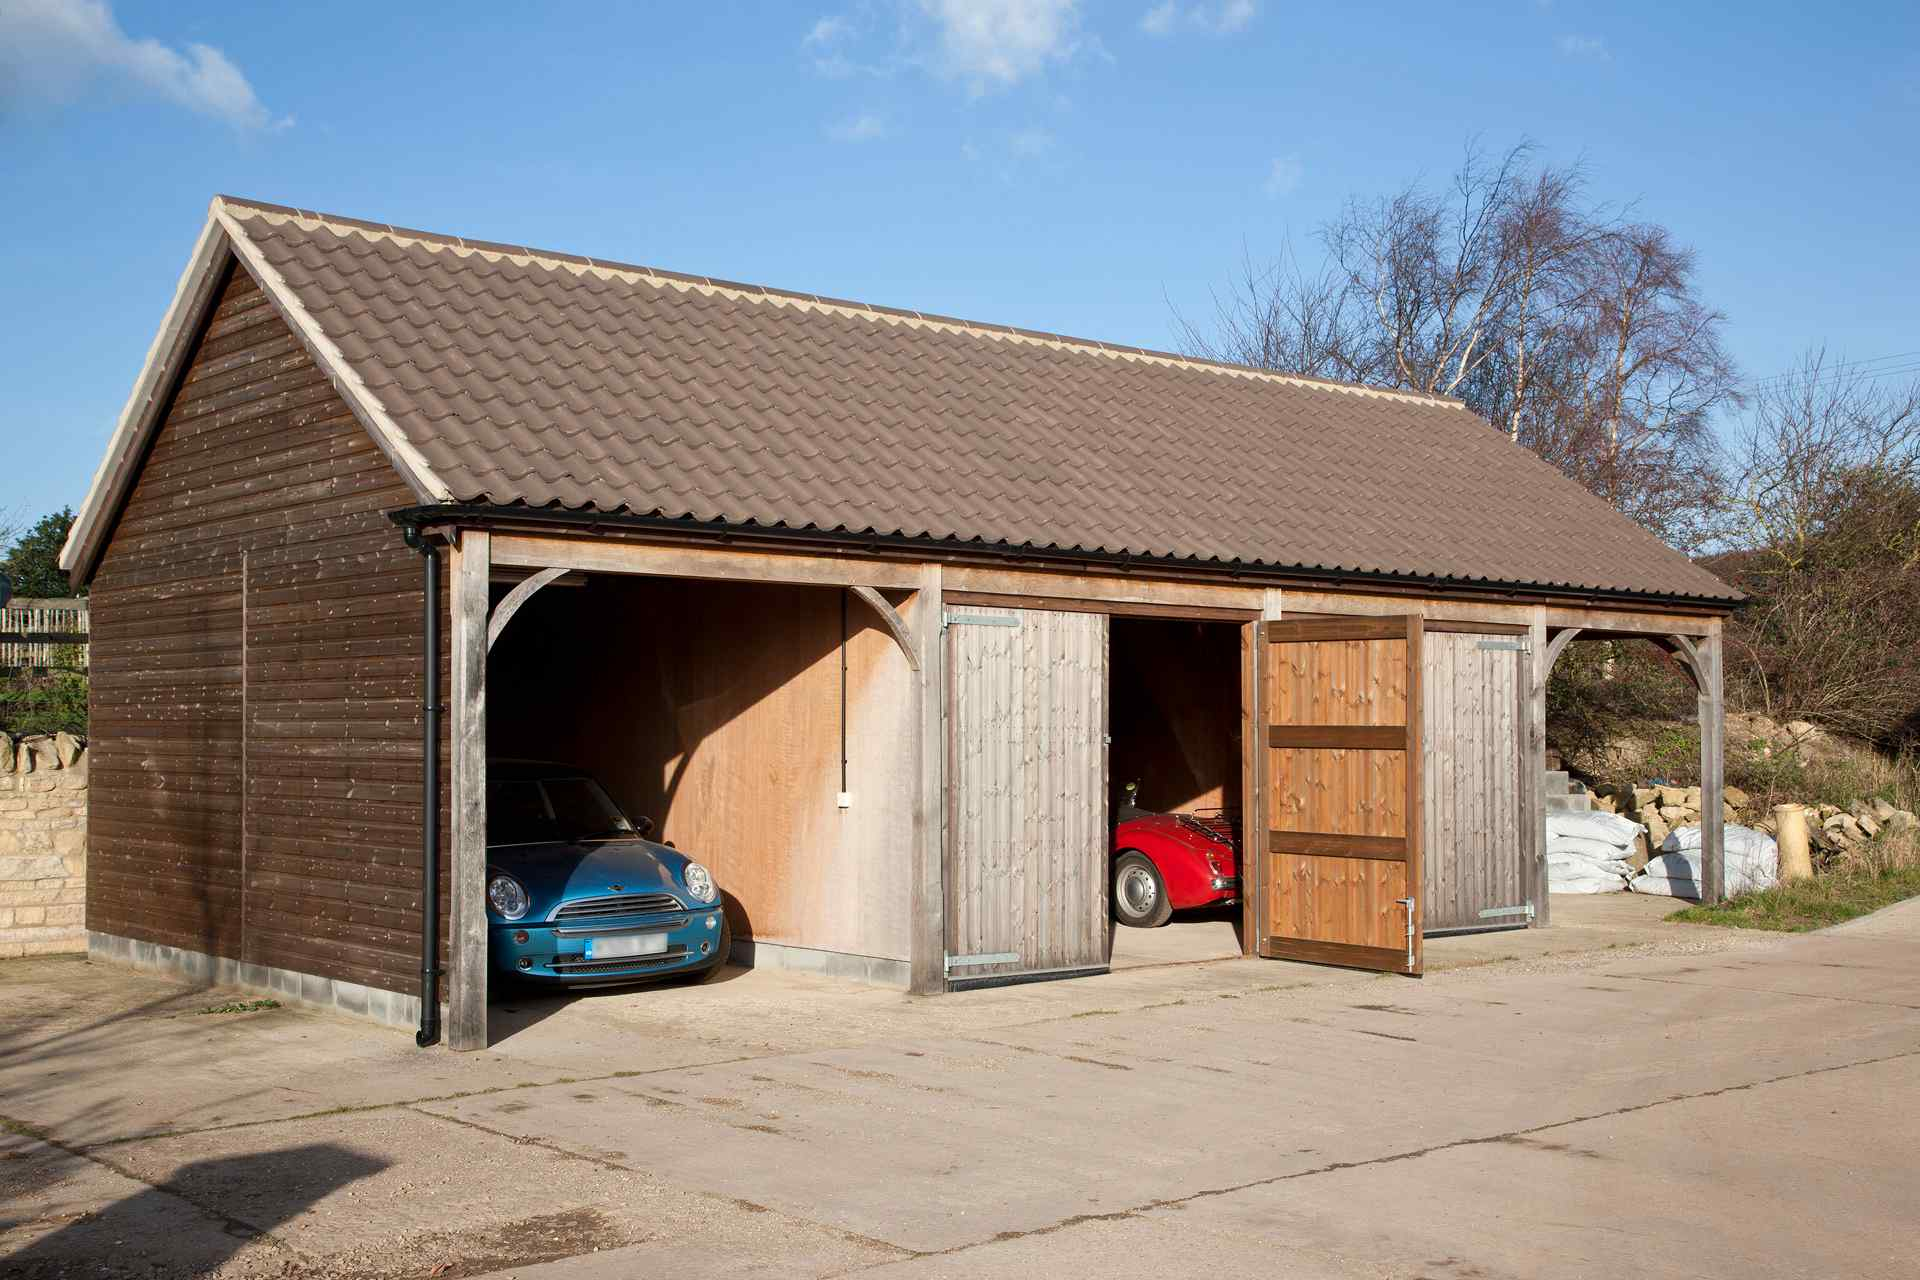 3 Car Garage Block : Three bay garage block with workshope lincolnshire